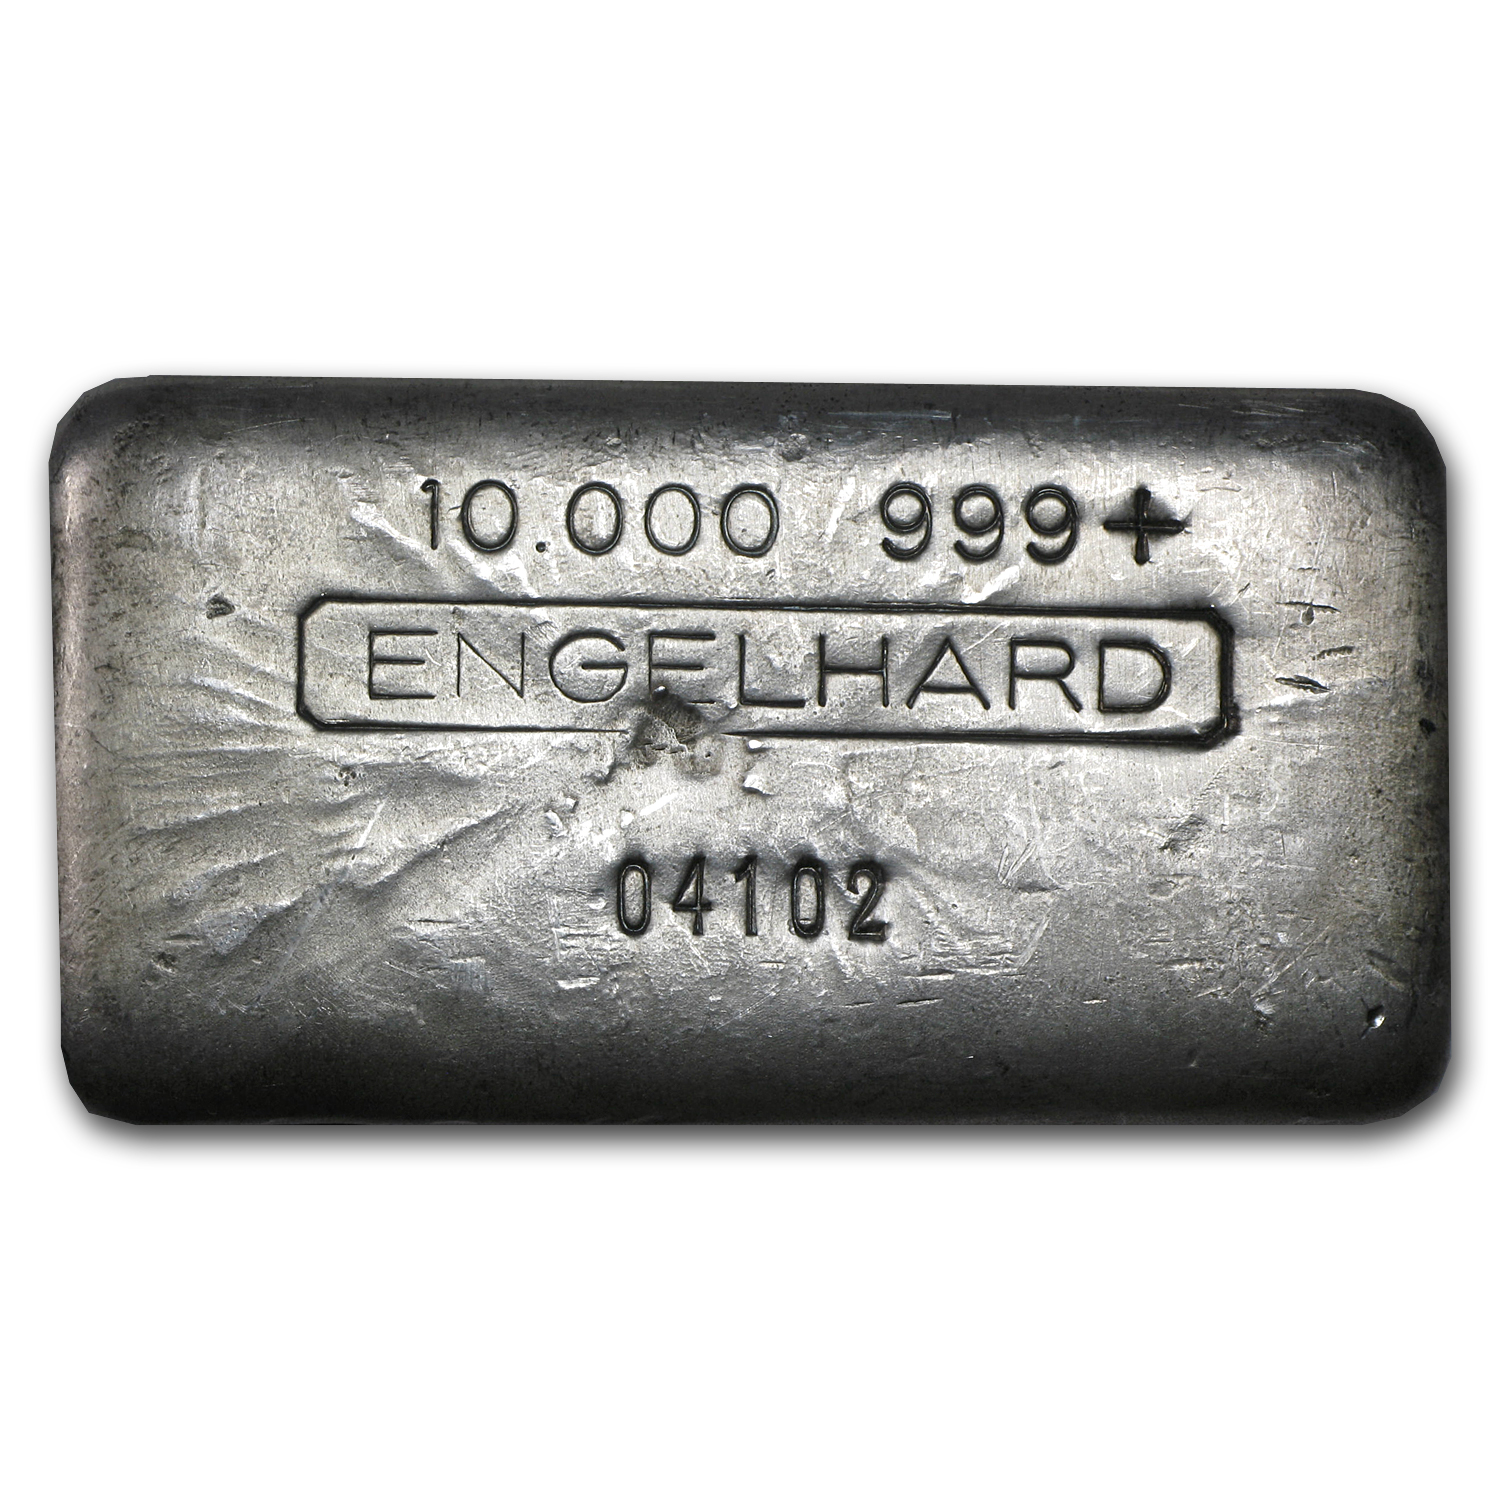 10 oz Silver Bar - Engelhard (Vintage, Wide, Poured)